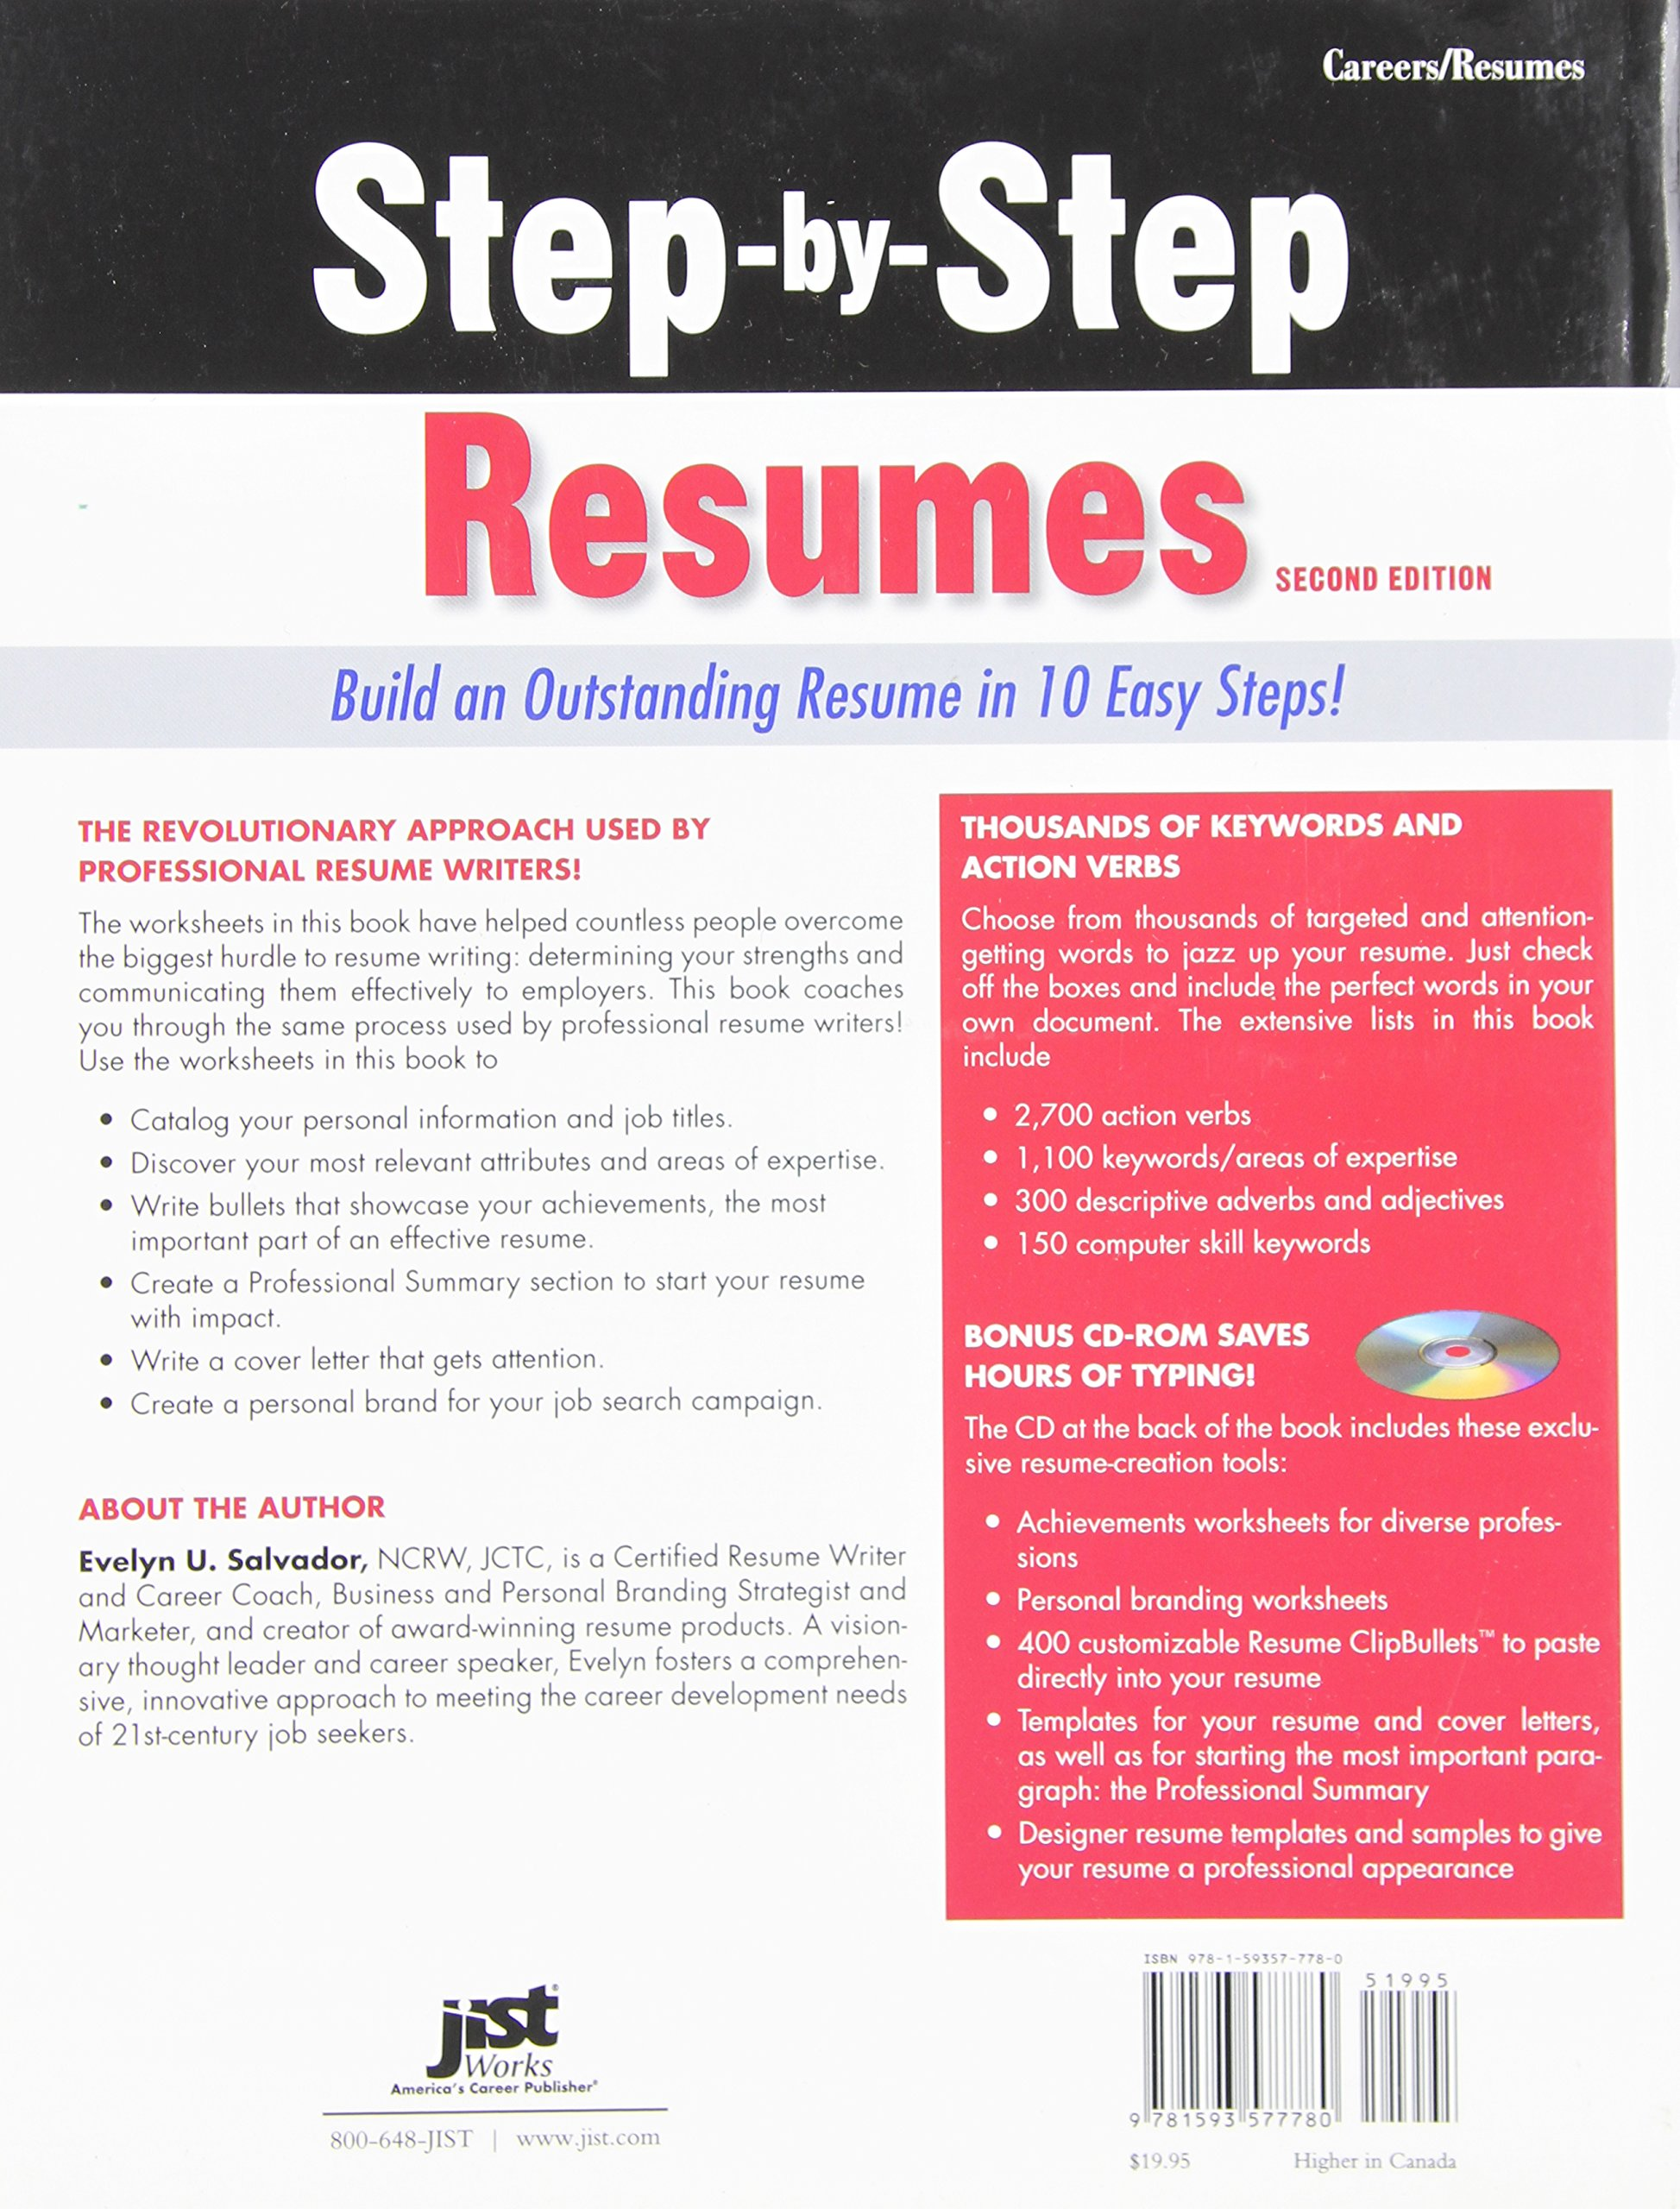 Step By Resumes Build An Outstanding Resume In 10 Easy Steps 2nd Ed Evelyn U Salvador 9781593577780 Amazon Books